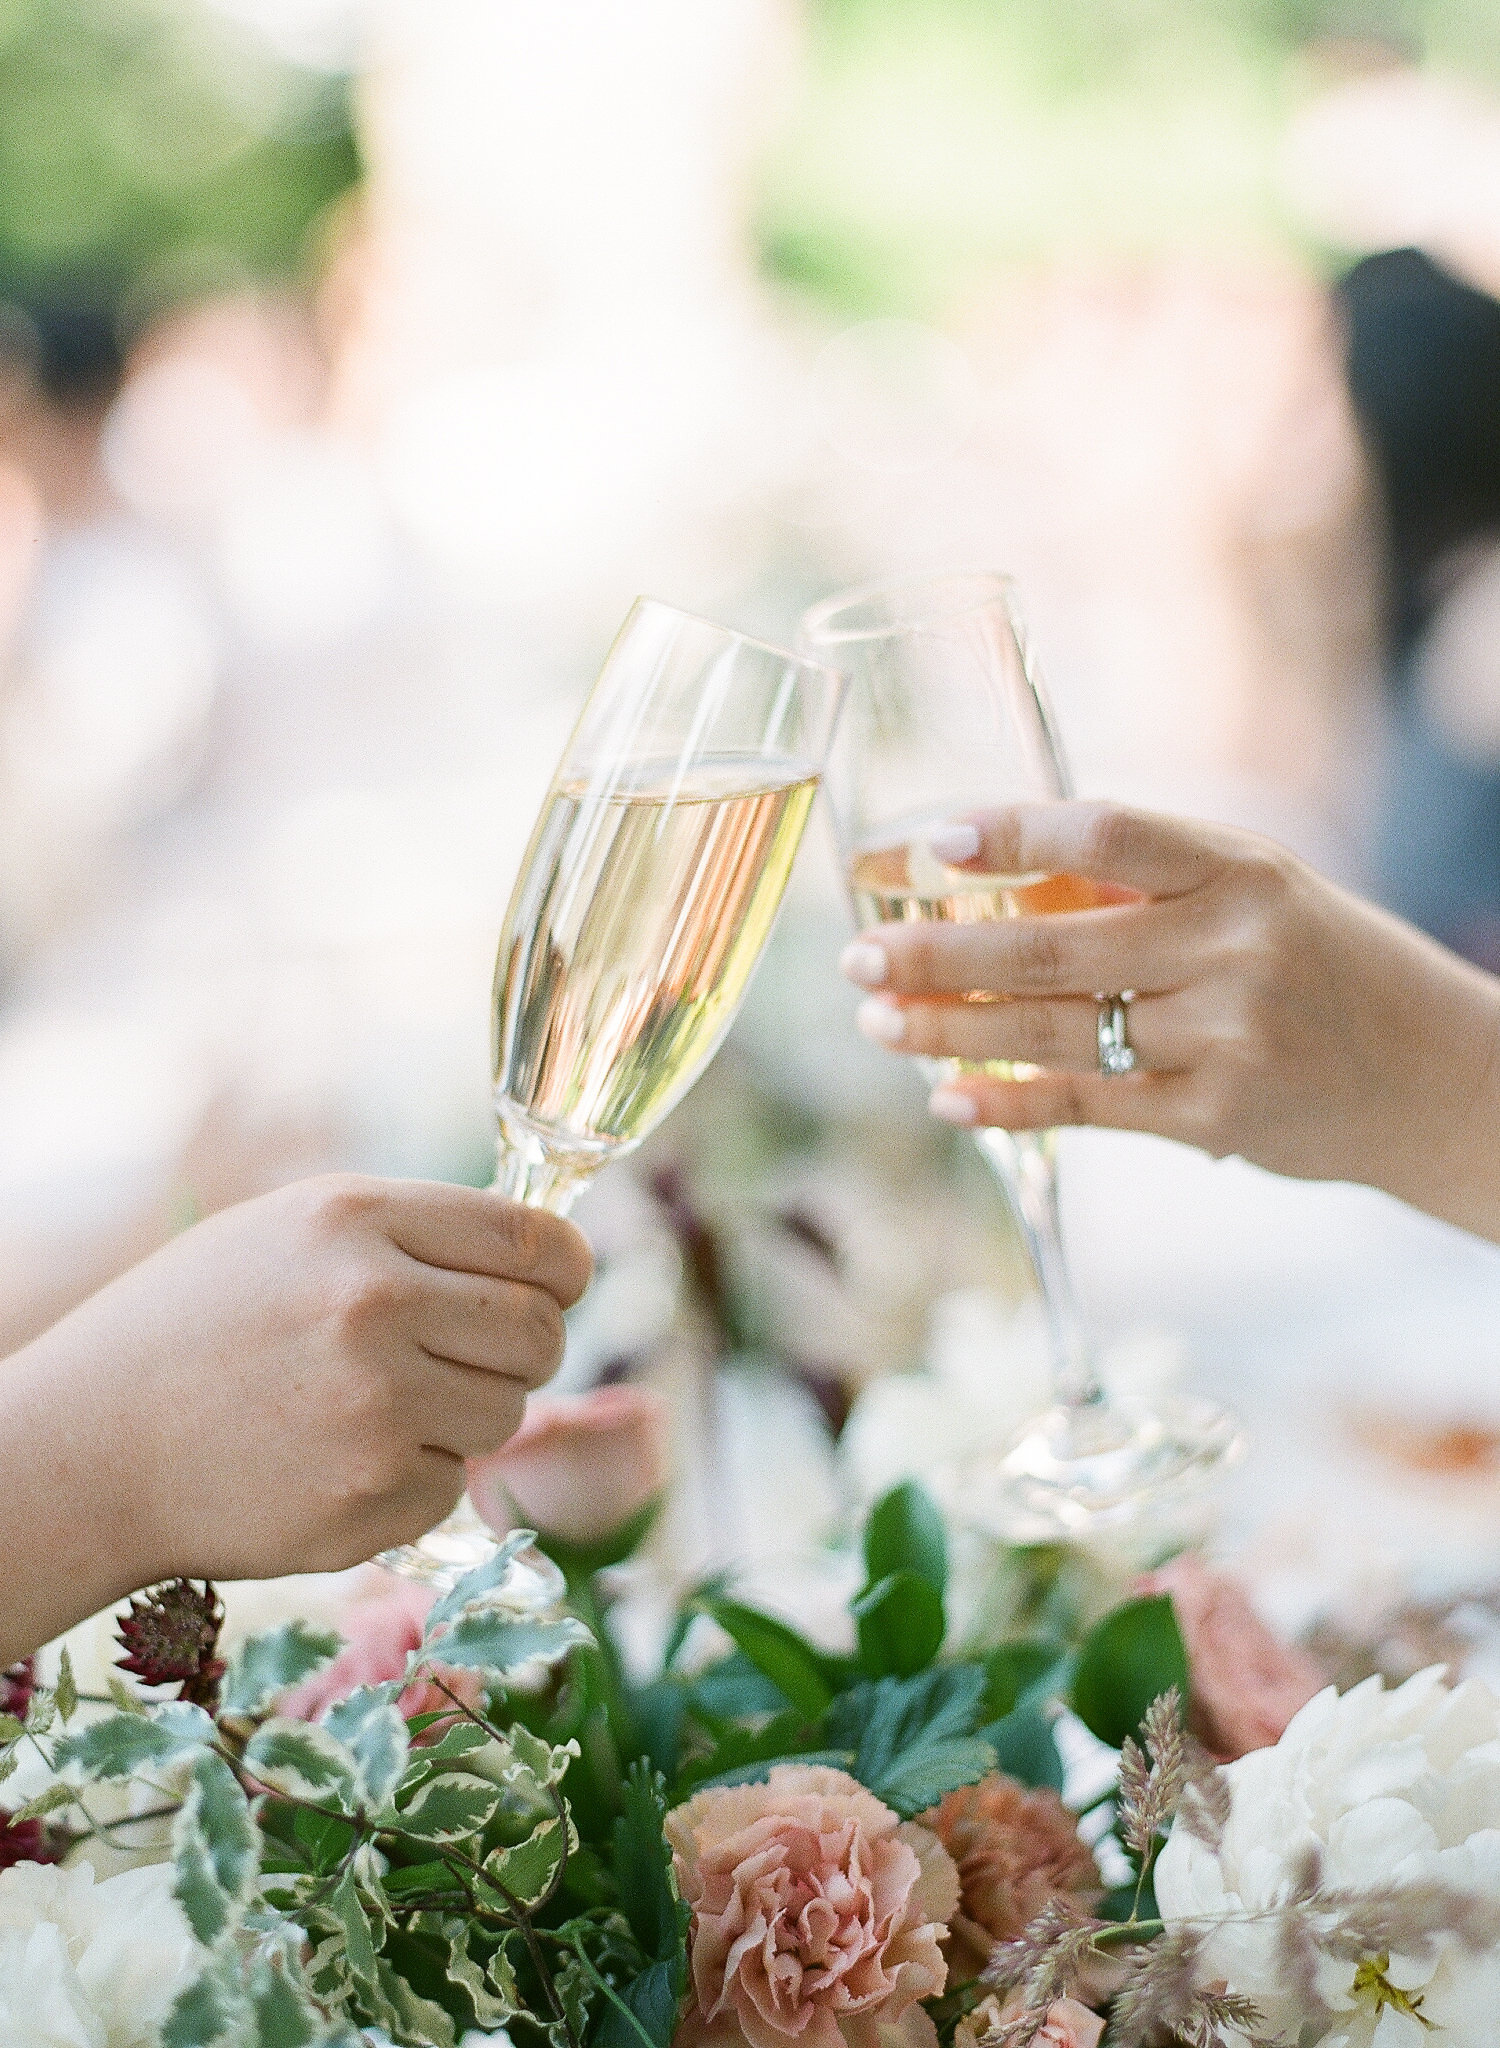 Guests Clinking Champagne Flutes During Toast